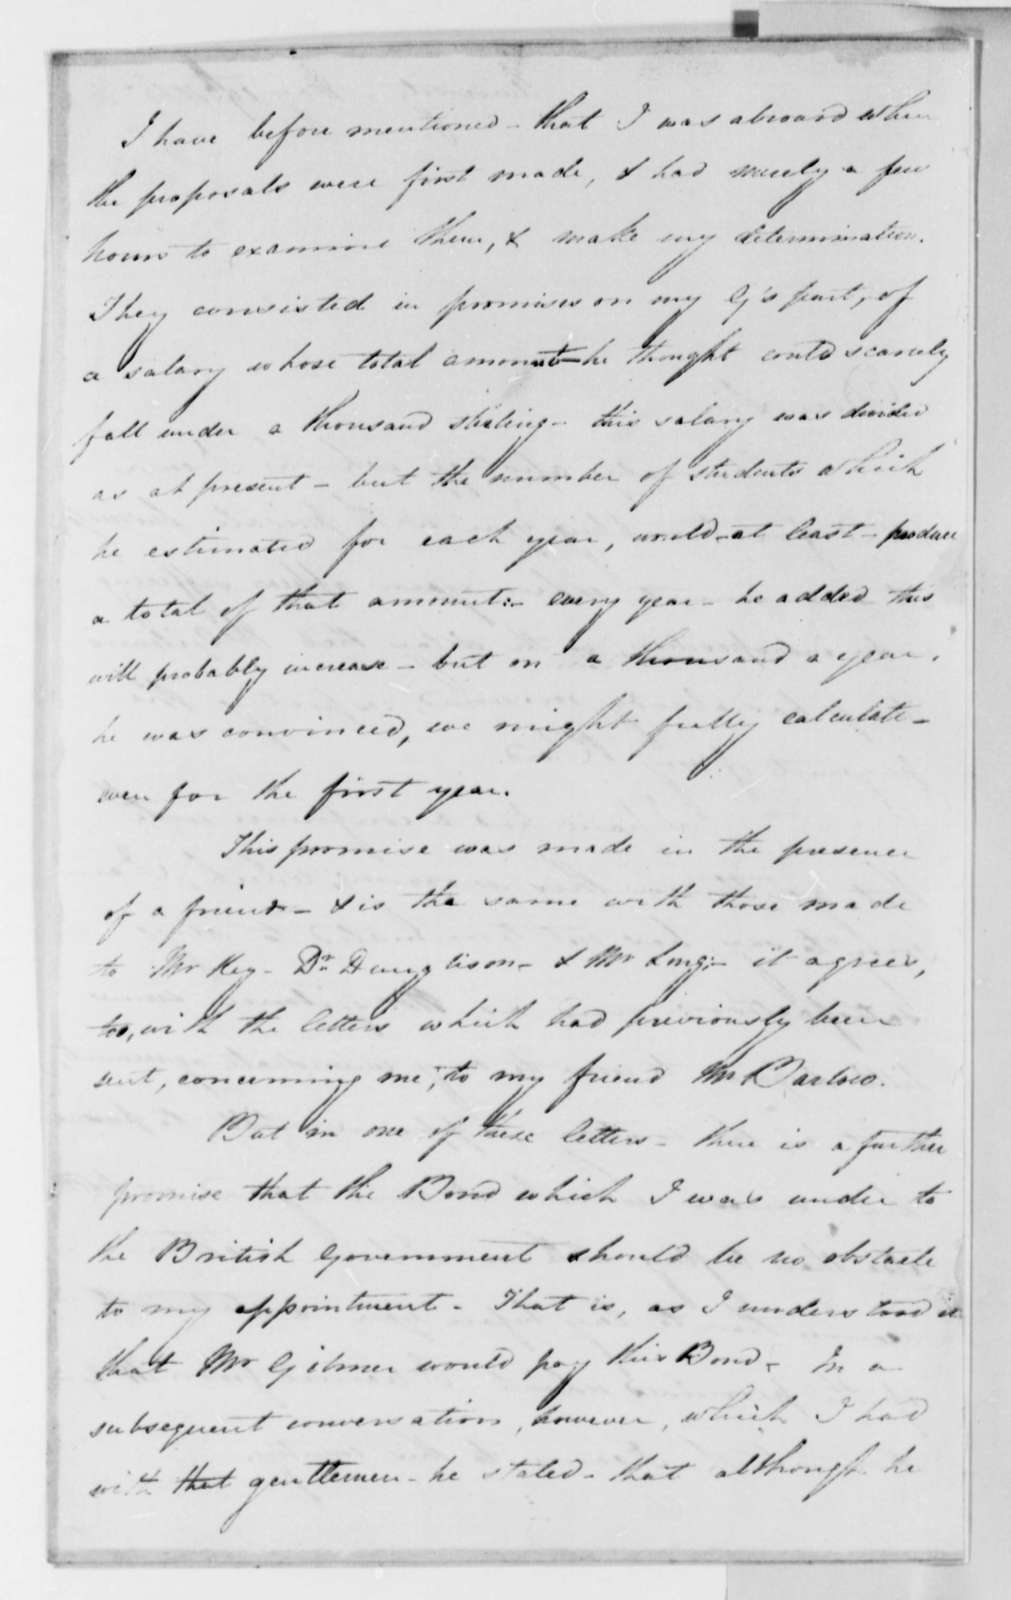 Charles Bonnycastle to Thomas Jefferson, May 19, 1825